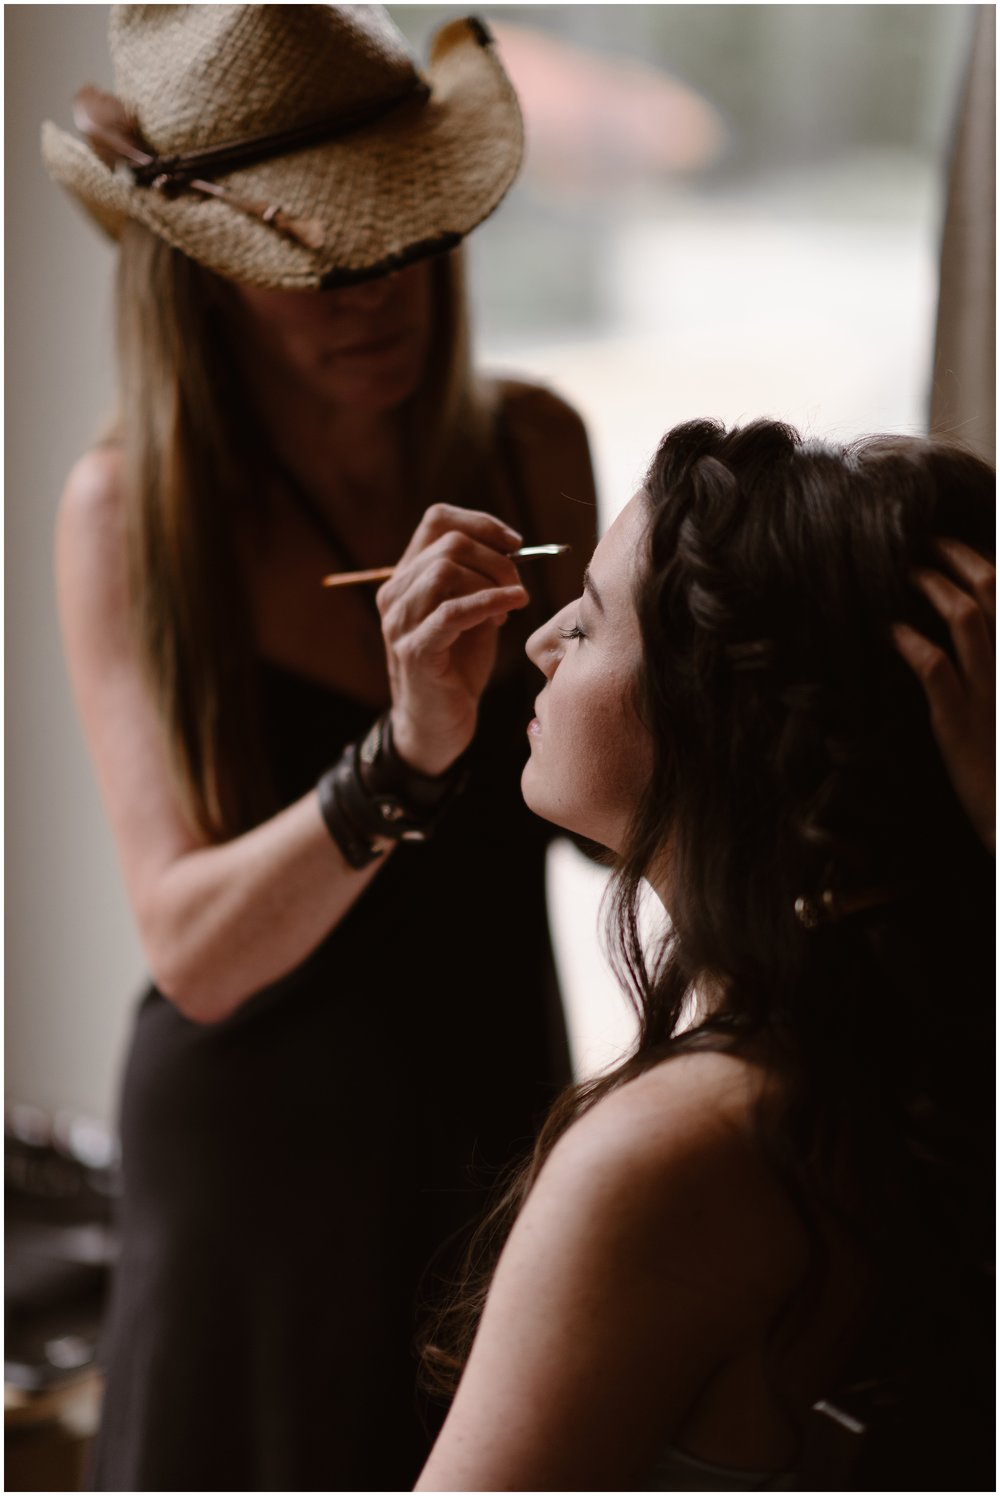 A makeup artist in a cowboy hat leans in to apply makeup to the bride, Katie. With her eyes closed, Katie patiently allows the makeup artist to do her job to get her ready for her Colorado mountain wedding. These adventure photos were captured by Adventure Instead, an adventure wedding photographer.